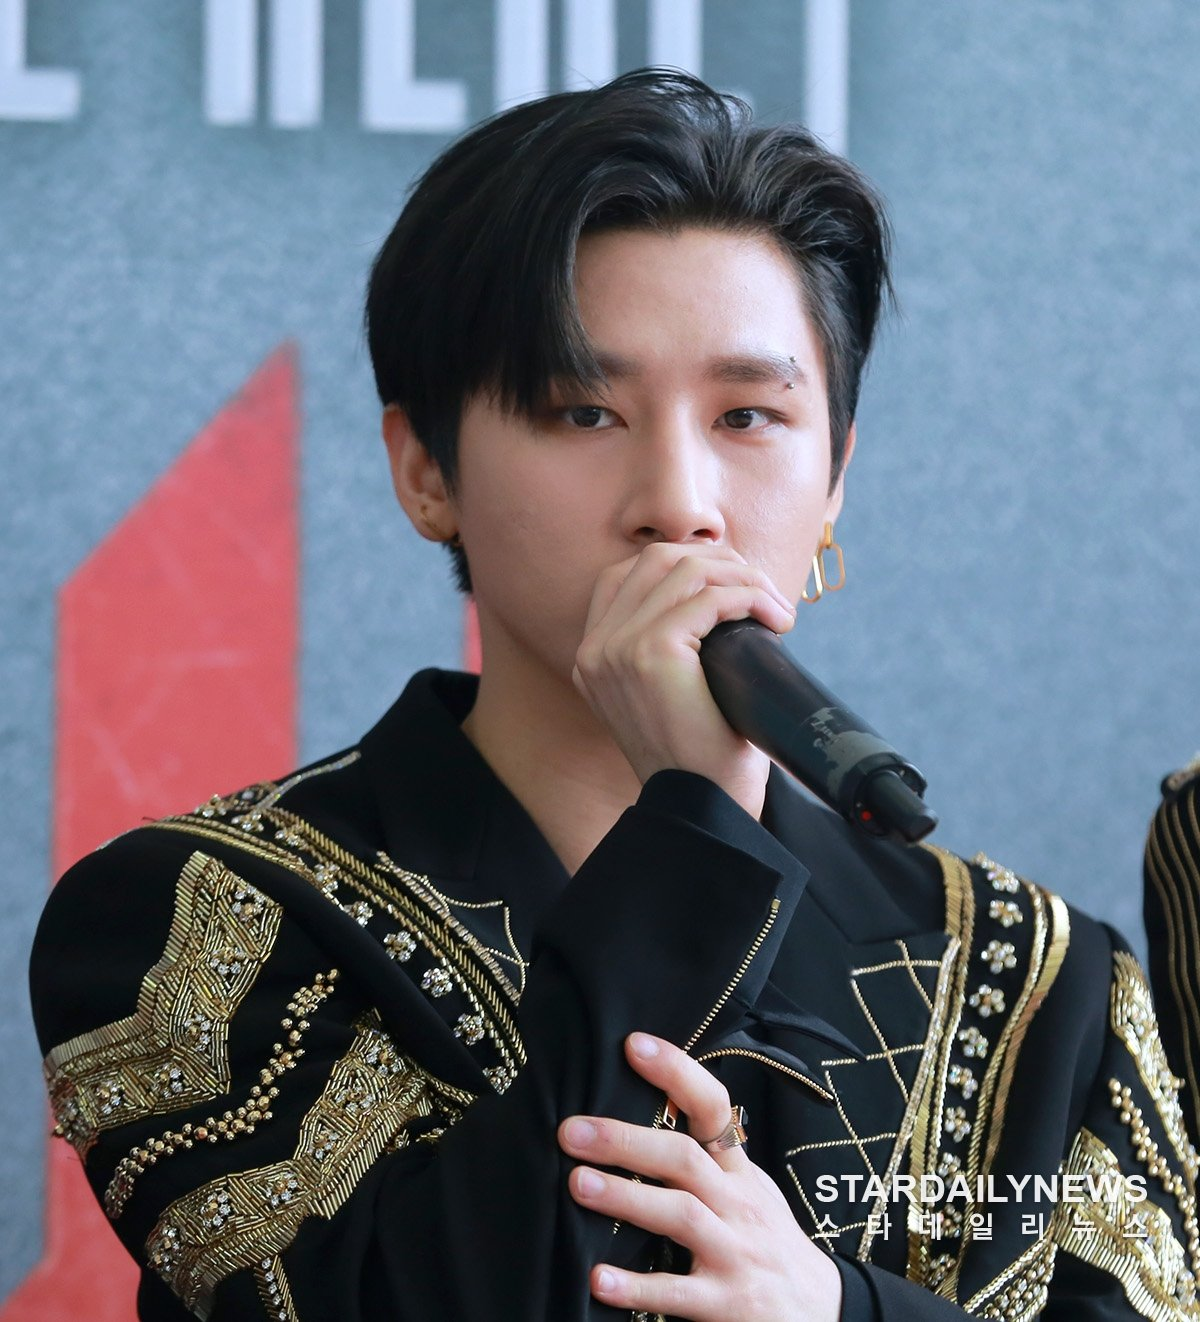 Monsta X I.M, 'Planning to Release Sexy Solo Song... Please Anticipate it'  https://t.co/IQsSOnRfnj https://t.co/nJJQhNIxLQ